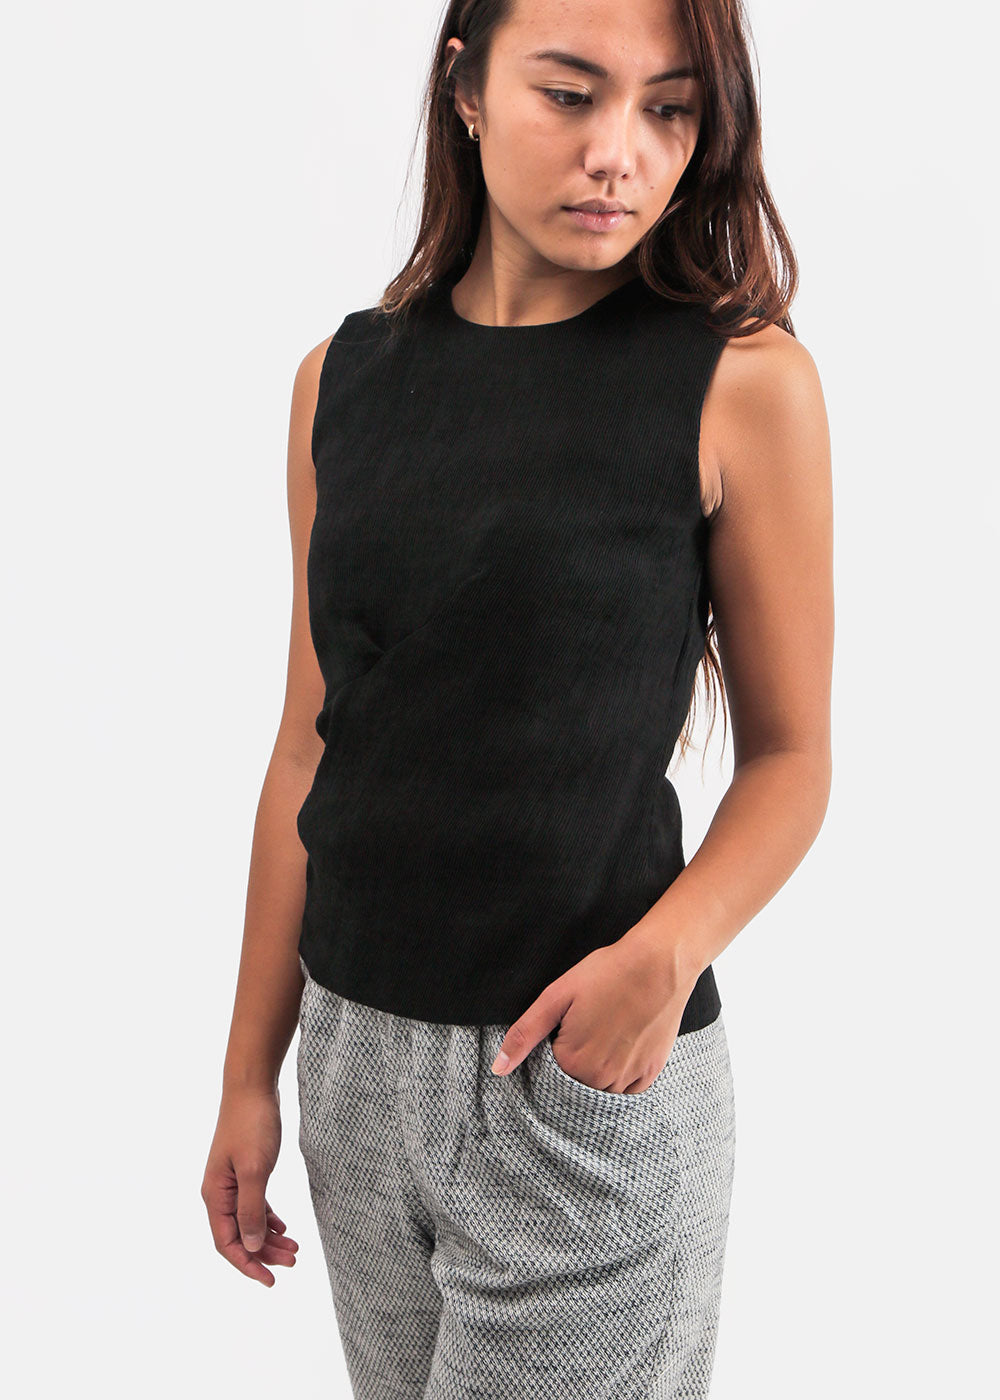 Ajaie Alaie Ink Siempre Lunes Top — Shop sustainable fashion and slow fashion at New Classics Studios